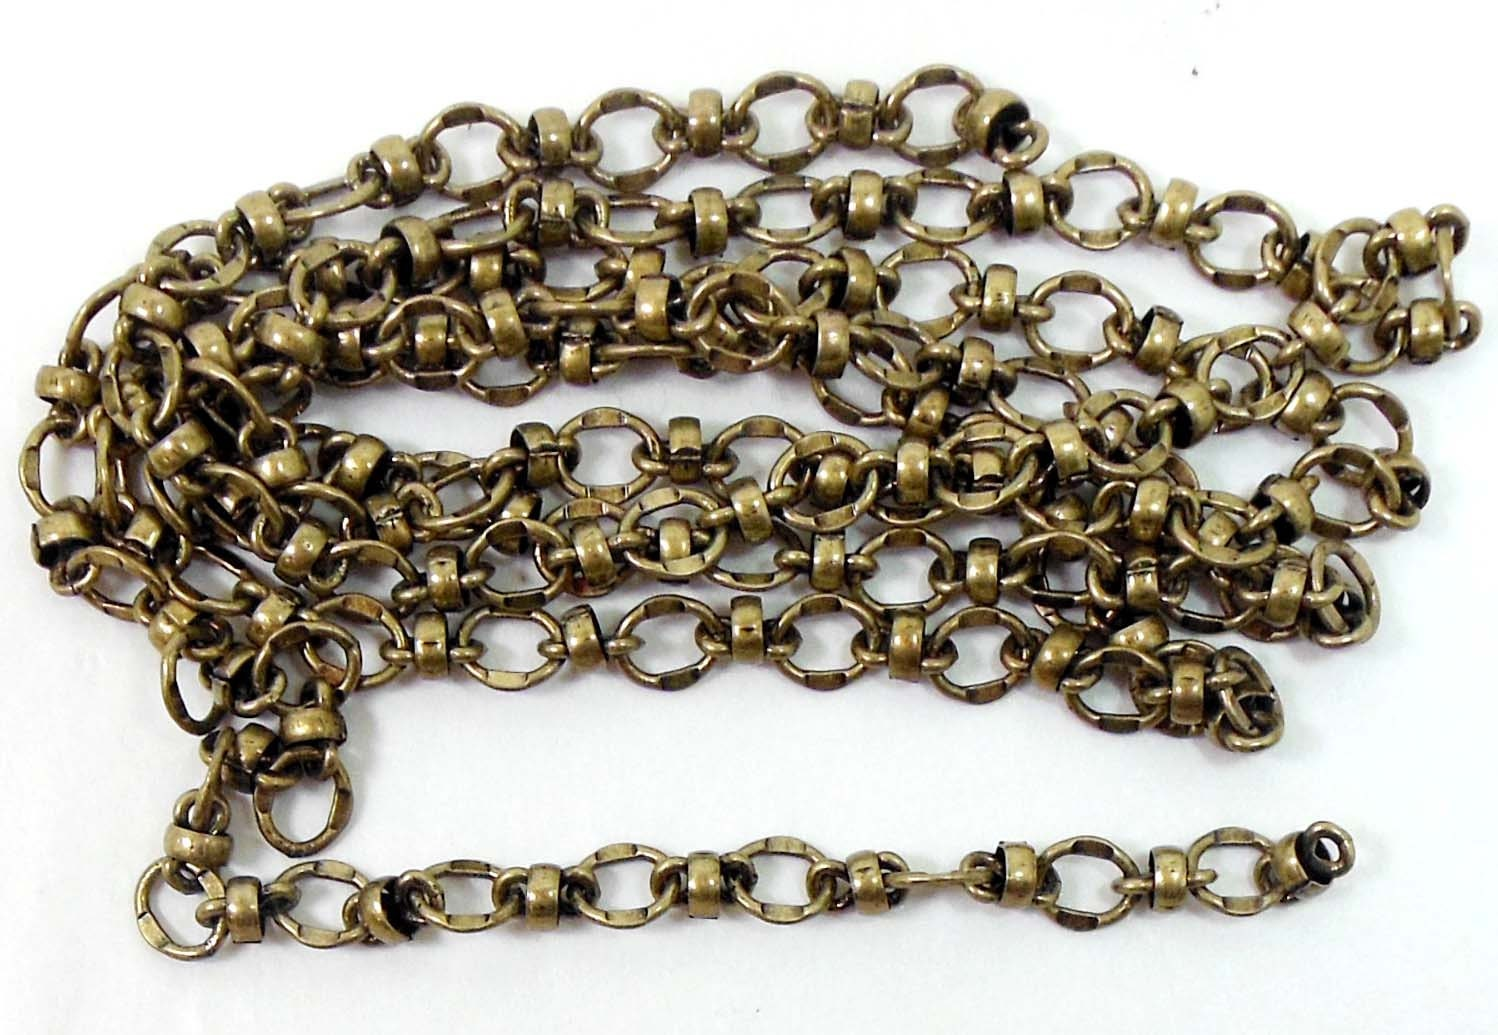 bead and link connector chain jewelry chain brass ox